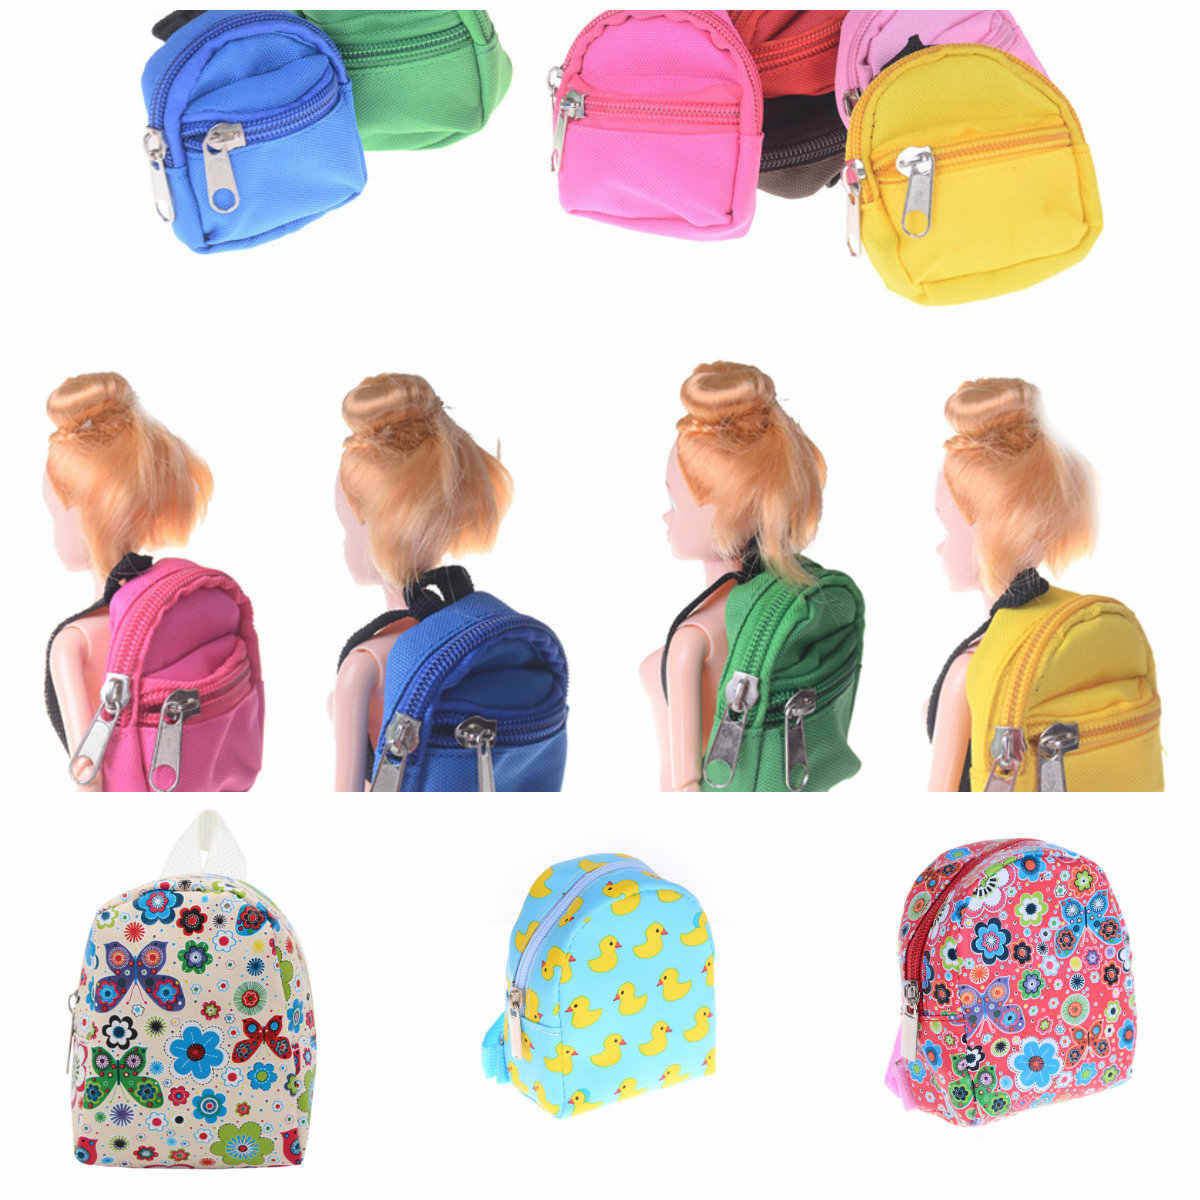 Baby Doll Outgoing Packets Outdoor Carrying Doll Backpack for Carrying18 Inch 43cm doll and for girl